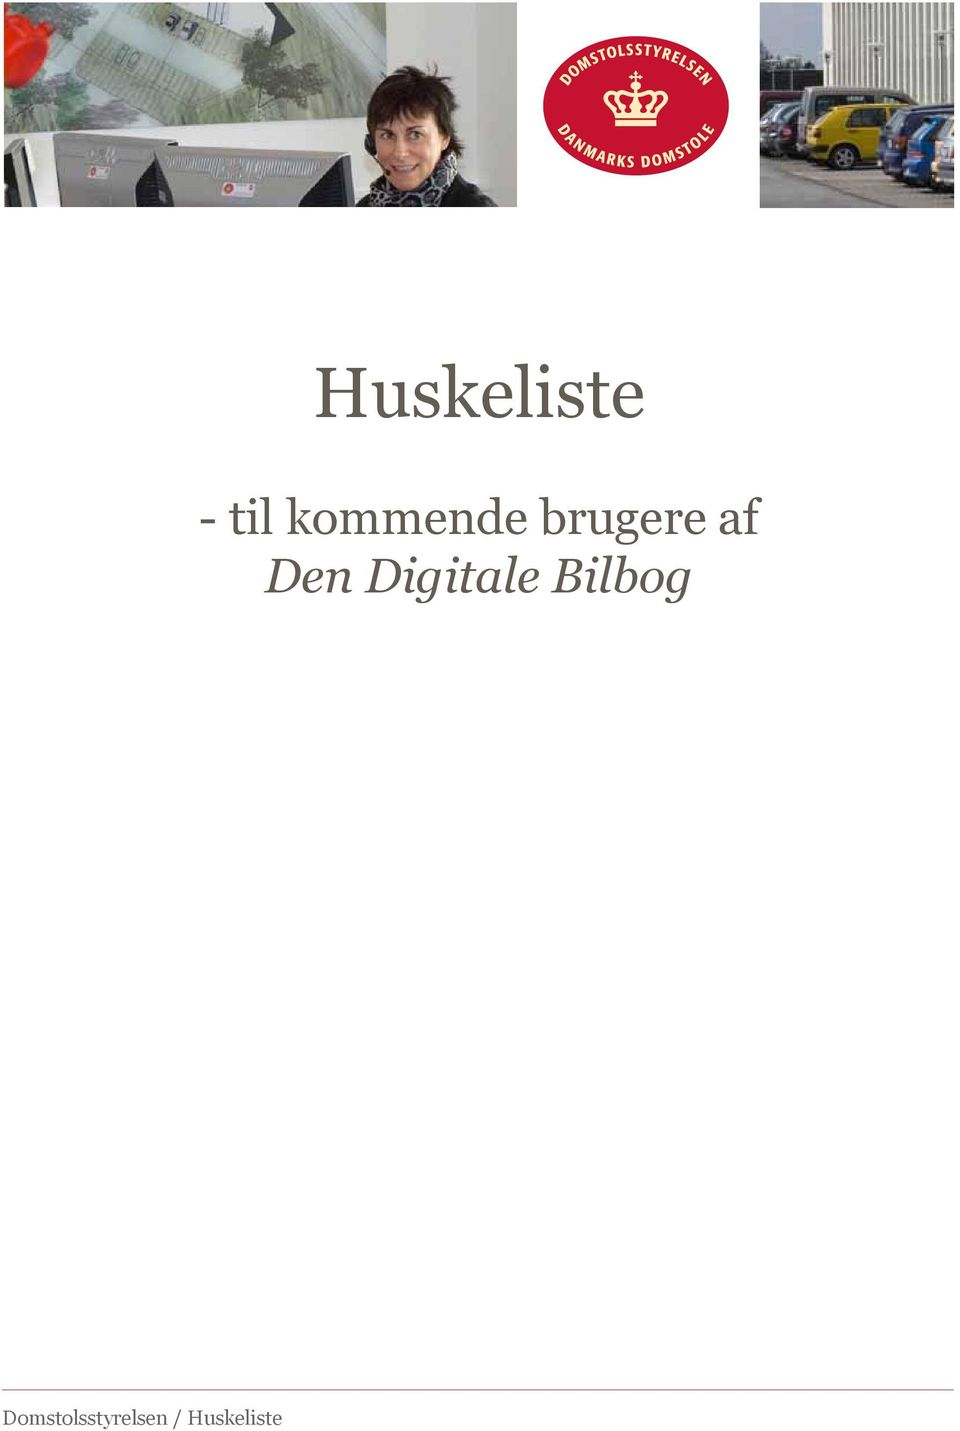 websitets sider. Huskeliste Designguide for Domstol.